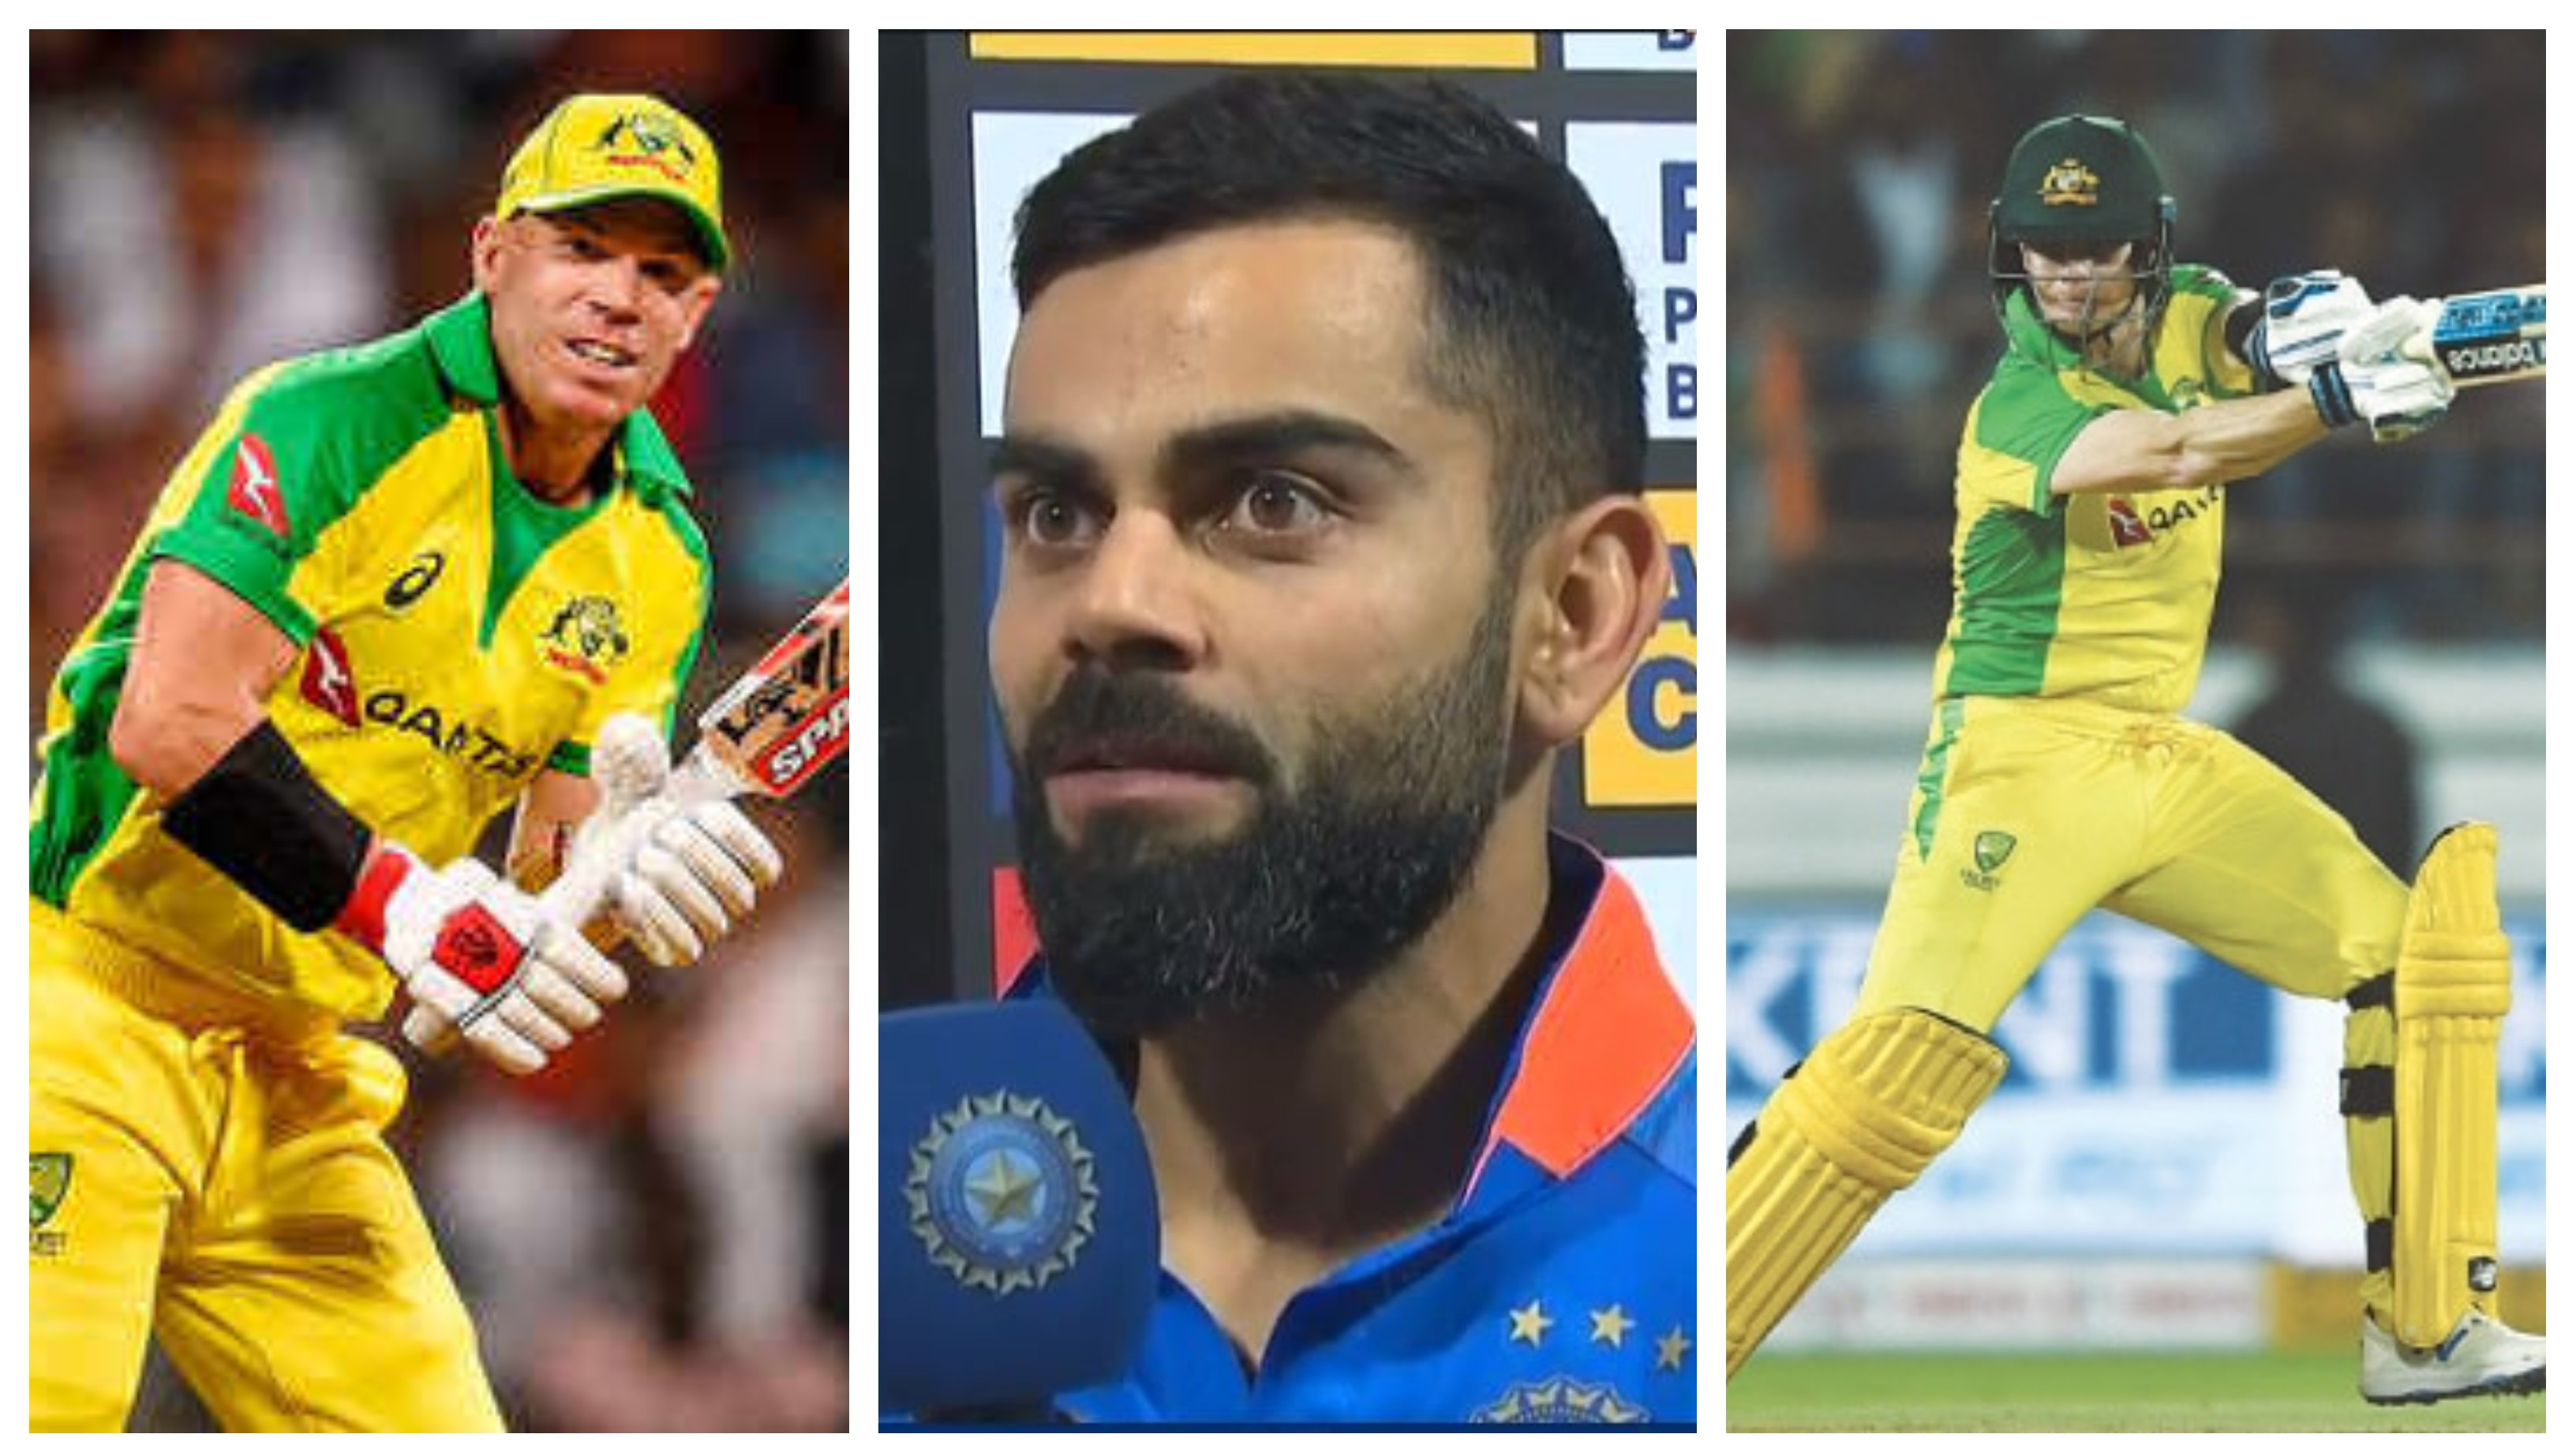 IND v AUS 2020: Kohli satisfied on regaining ODI supremacy over Australia in Smith, Warner's presence